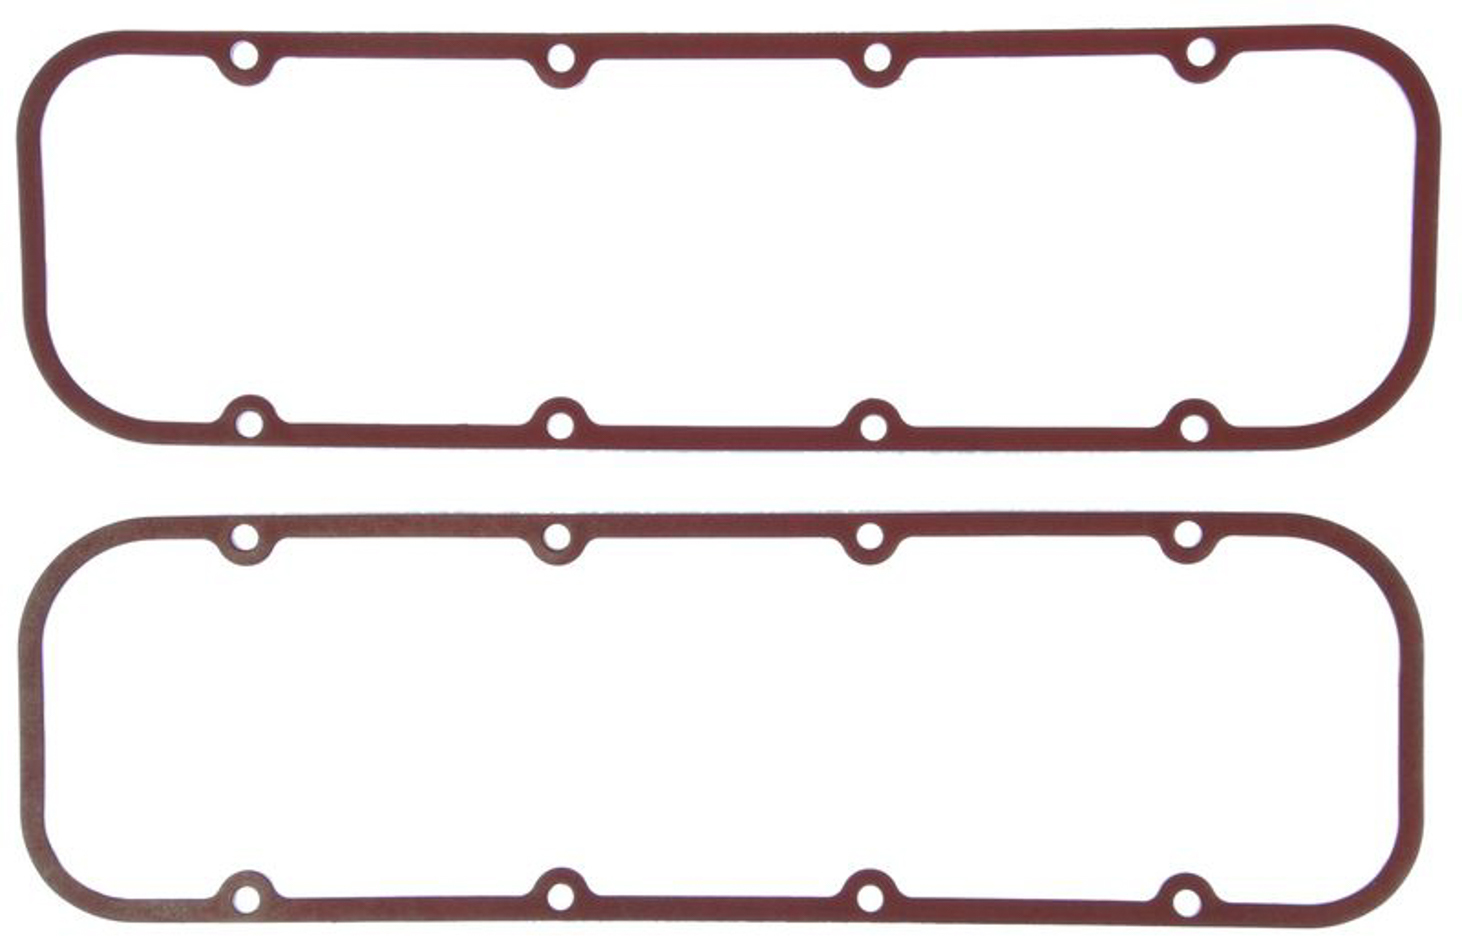 Michigan 77 VS50764 Valve Cover Gasket, 0.080 in Thick, PTFE Coated Fiber, Small Block Chevy, Pair